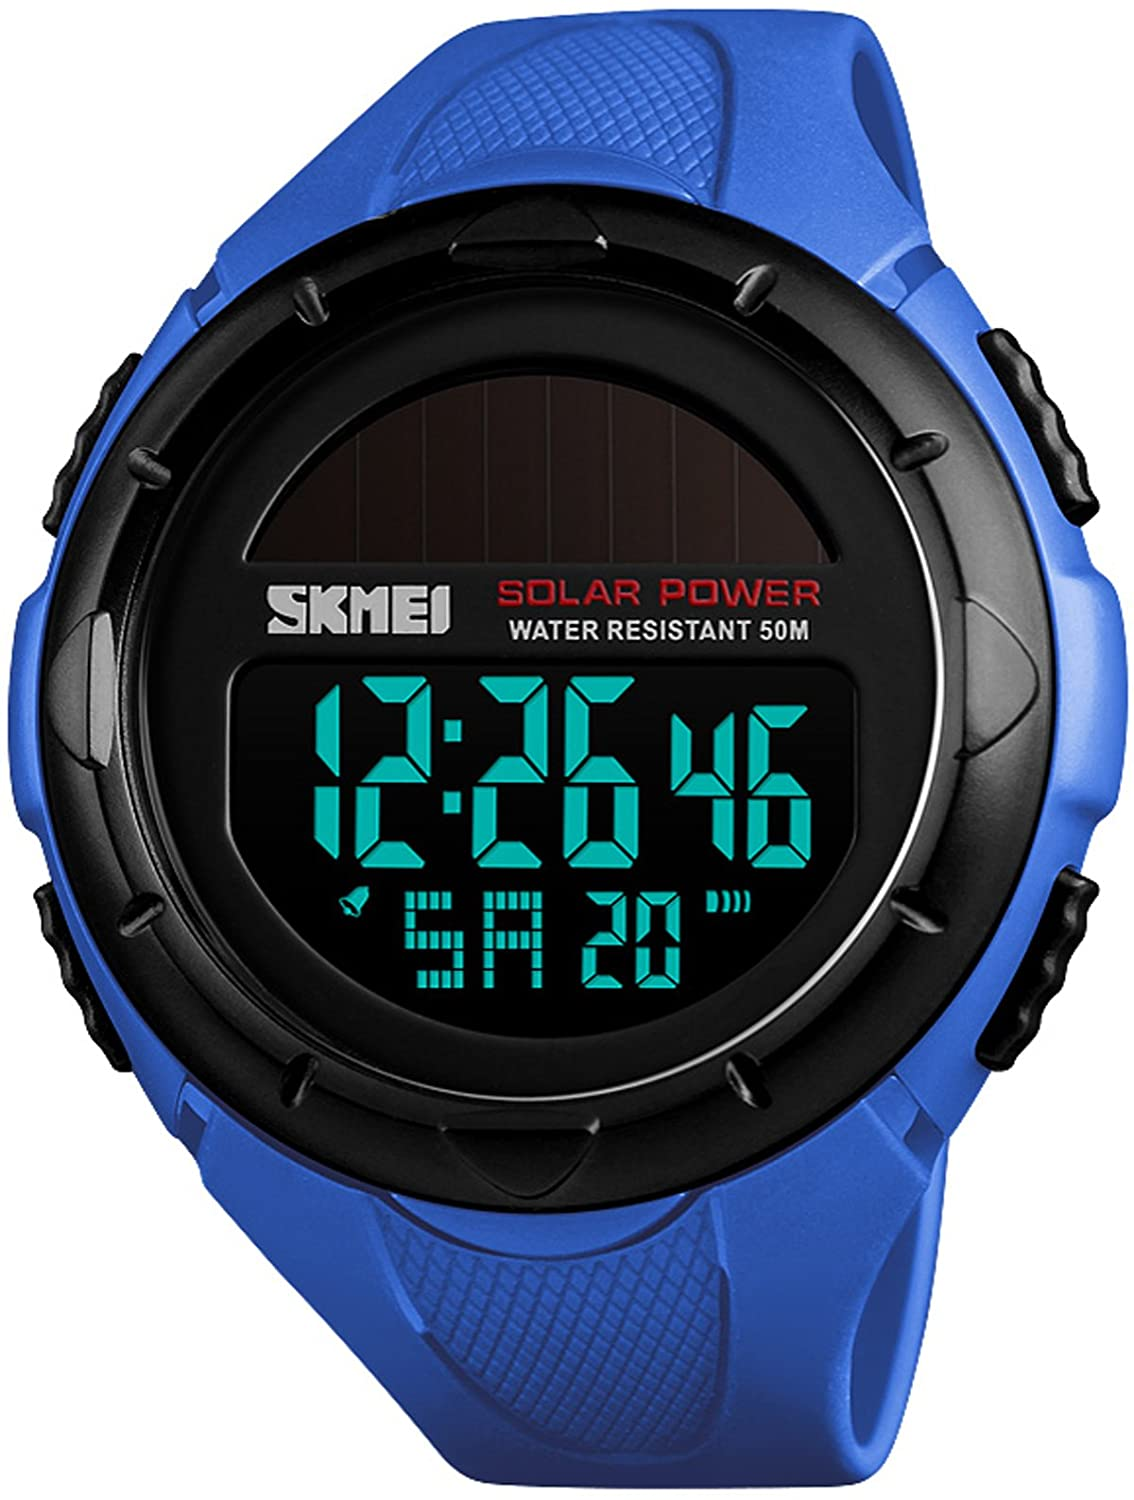 Mens Military Digital Sports Watch Solar Powered Waterproof Stopwatch Army Electronic Outdoor Sport Watches